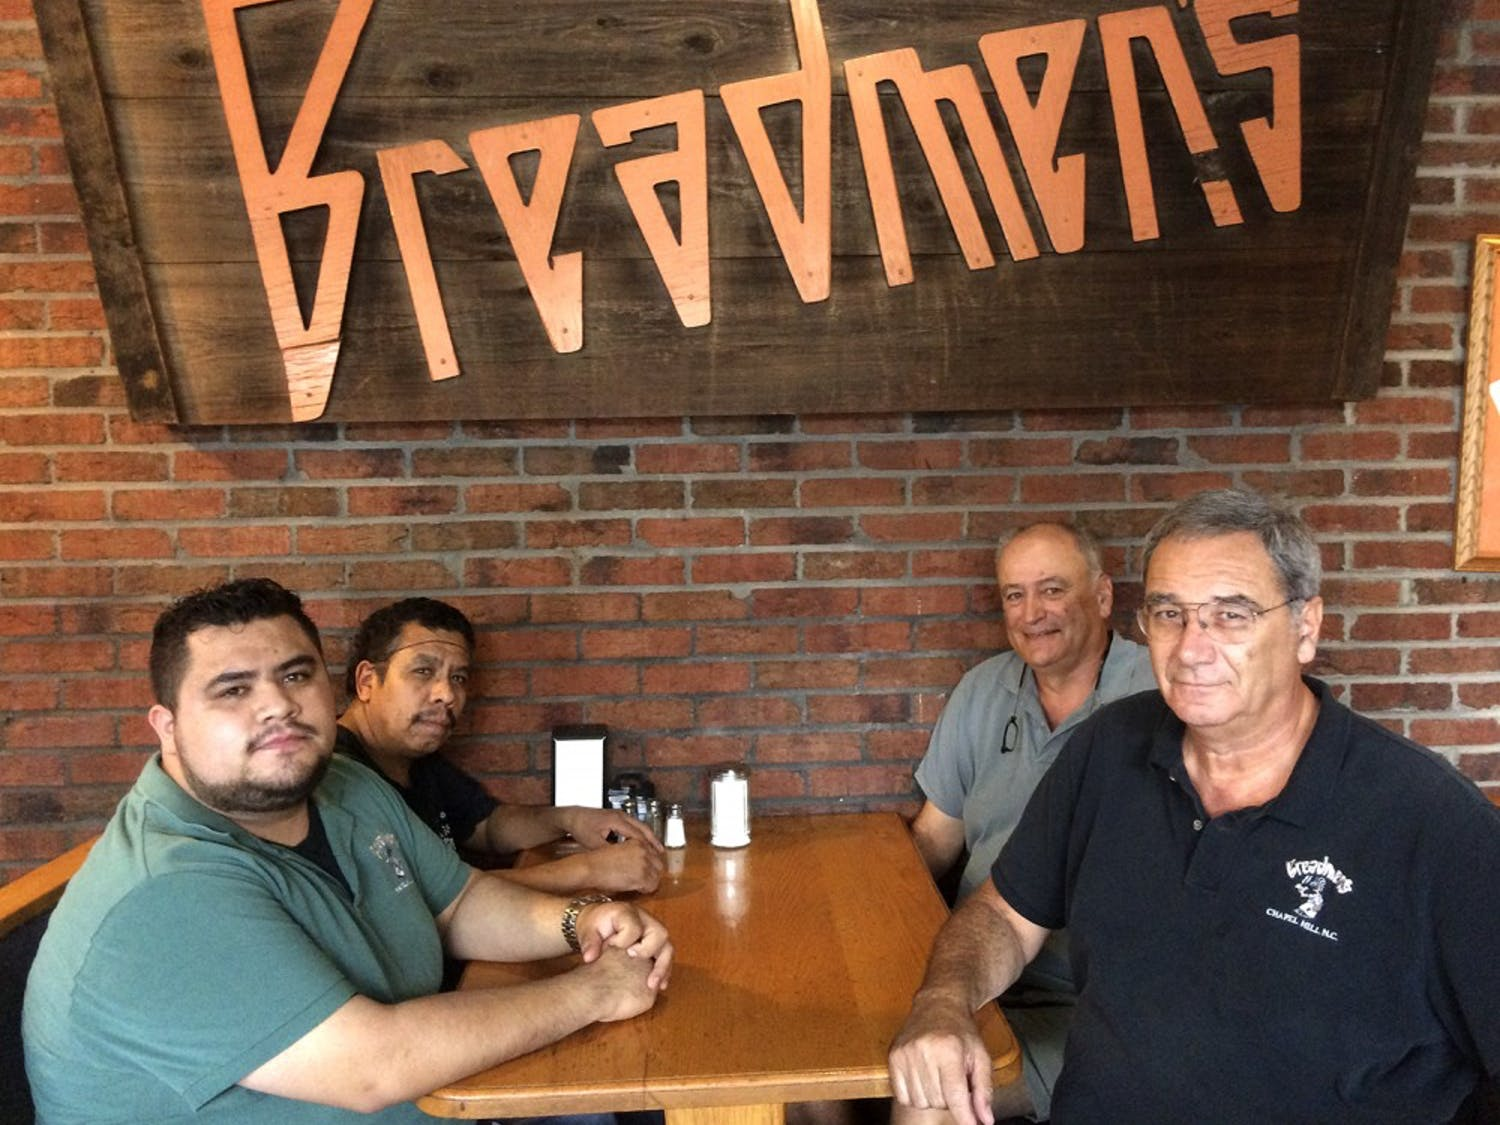 Breadmen's employees Omar Castro and Luz Castro, along with Bill Piscitello and Roy Piscitello, the owners of Breadmen's, pose together.